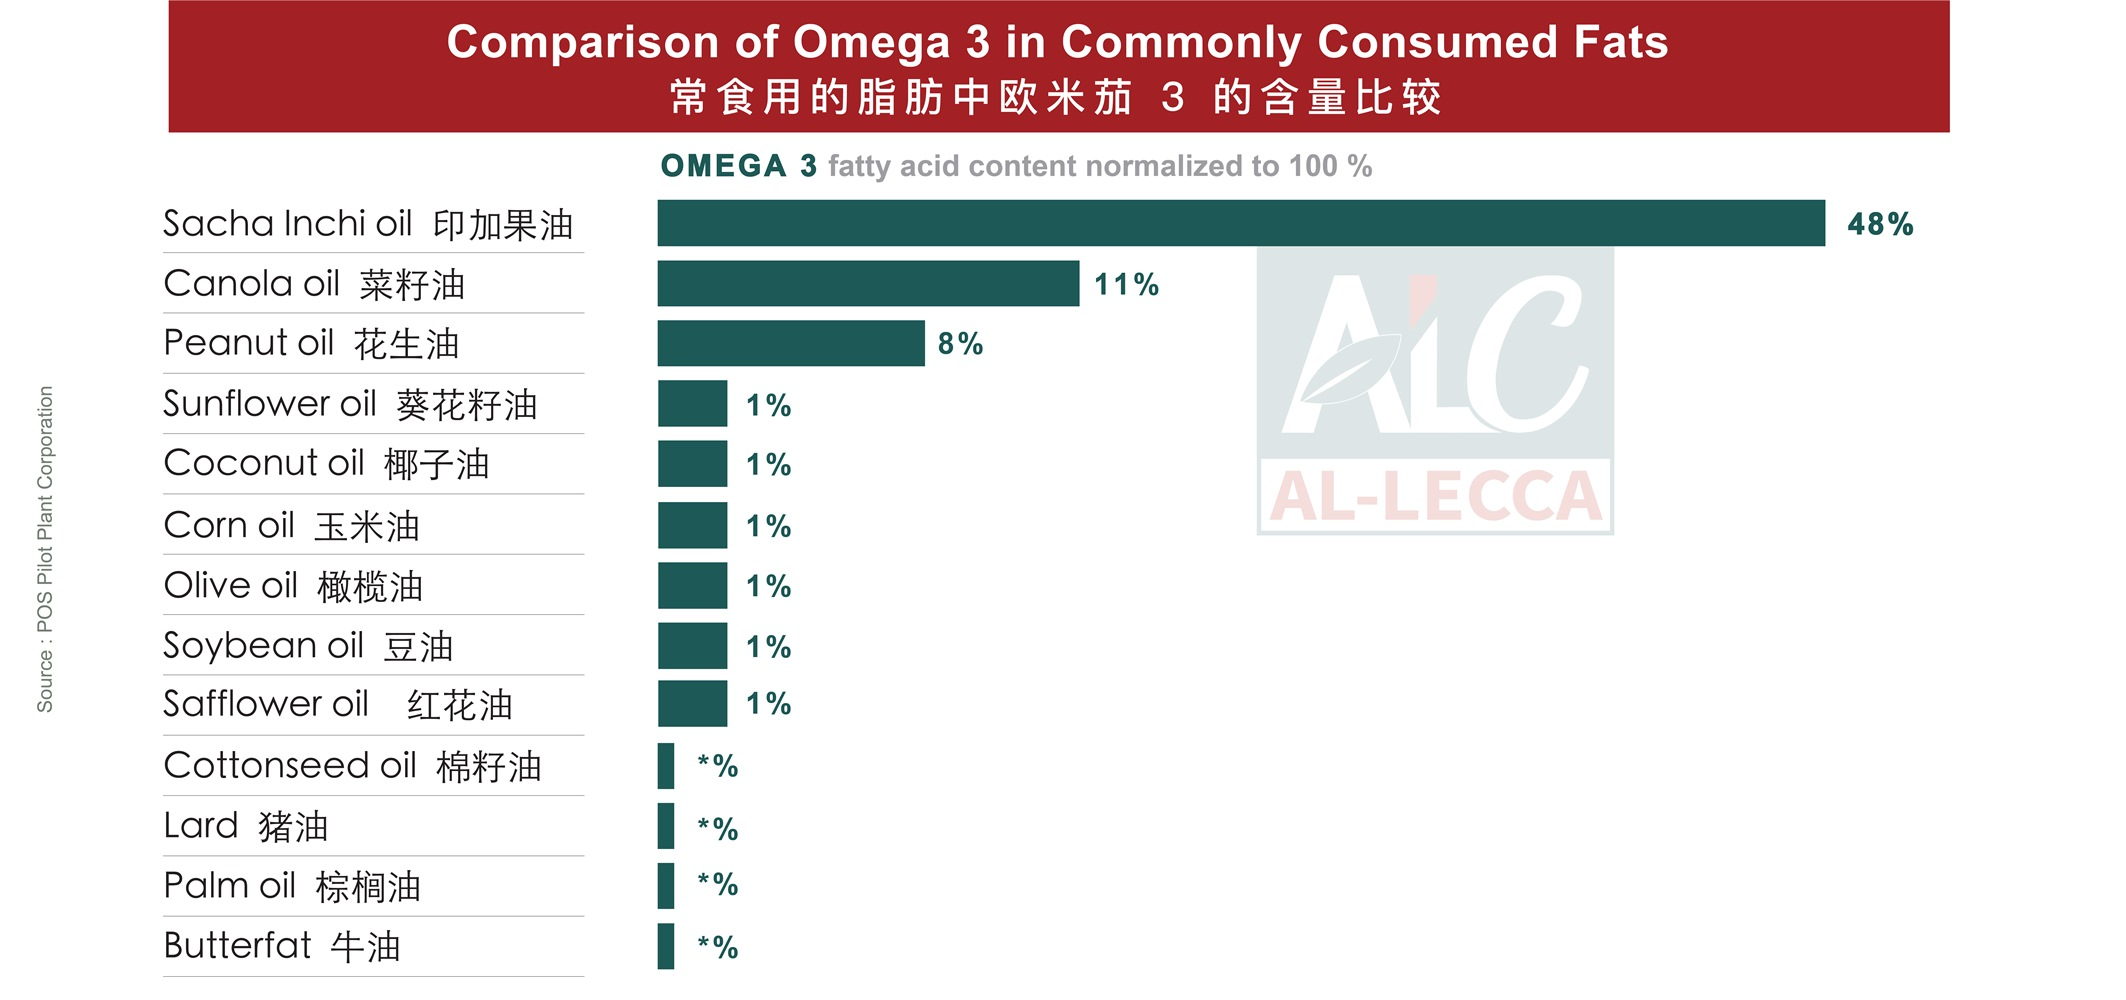 Comparison of Omega 3 between Sacha Inchi Oil and other commonly consumed fats